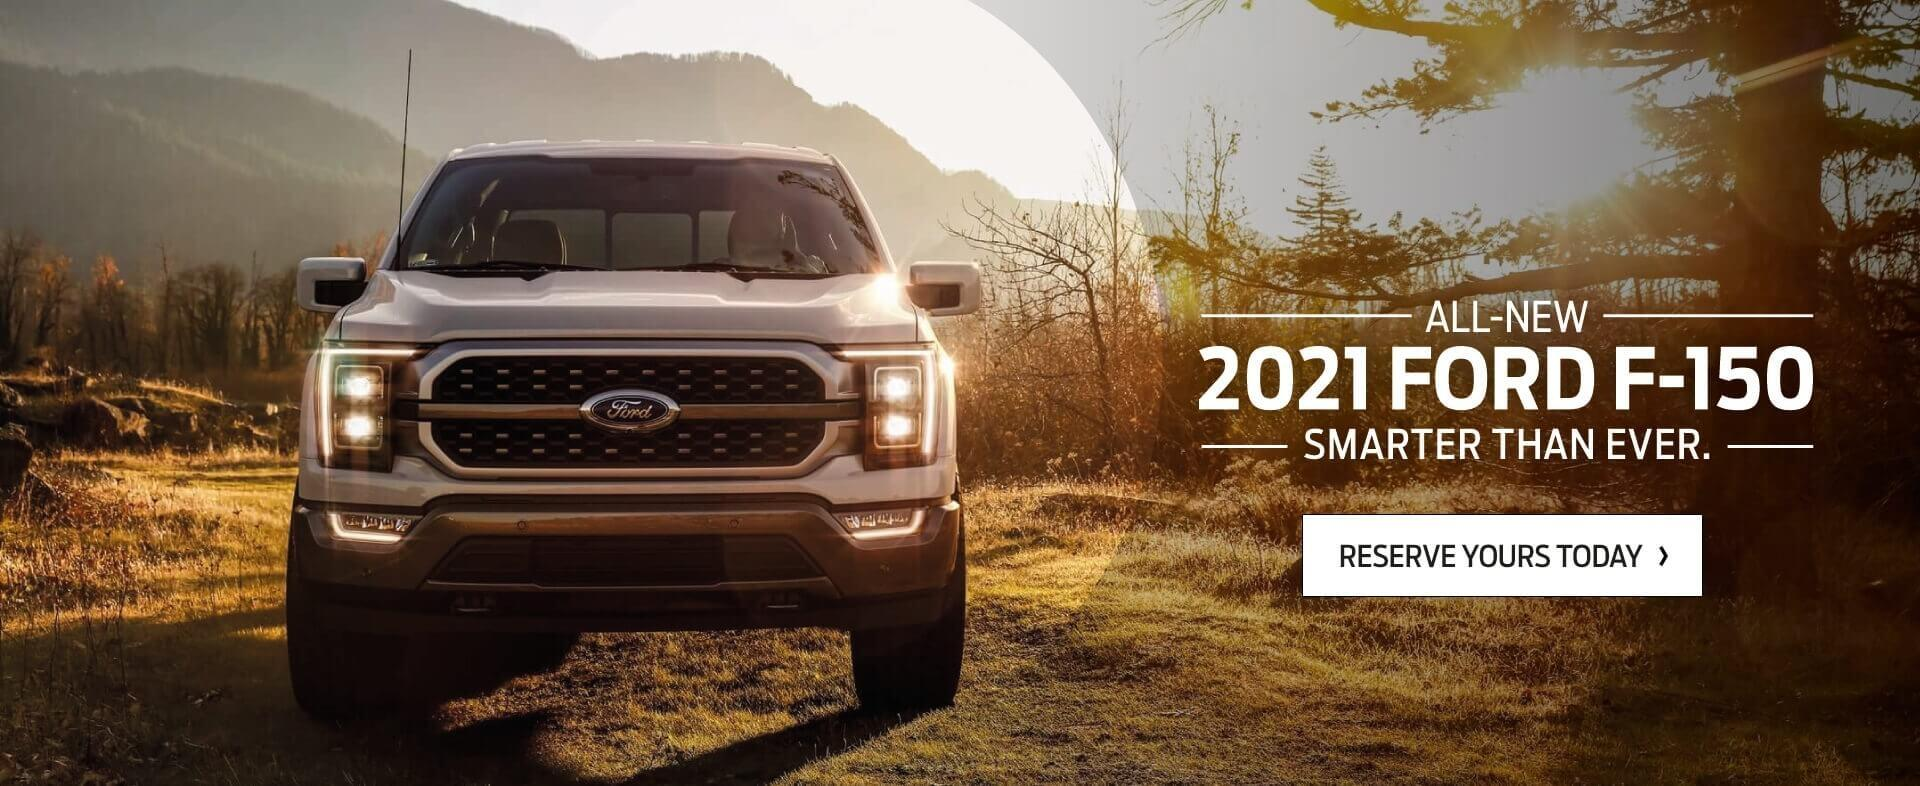 2021 Ford F-150 | Steele Ford Lincoln